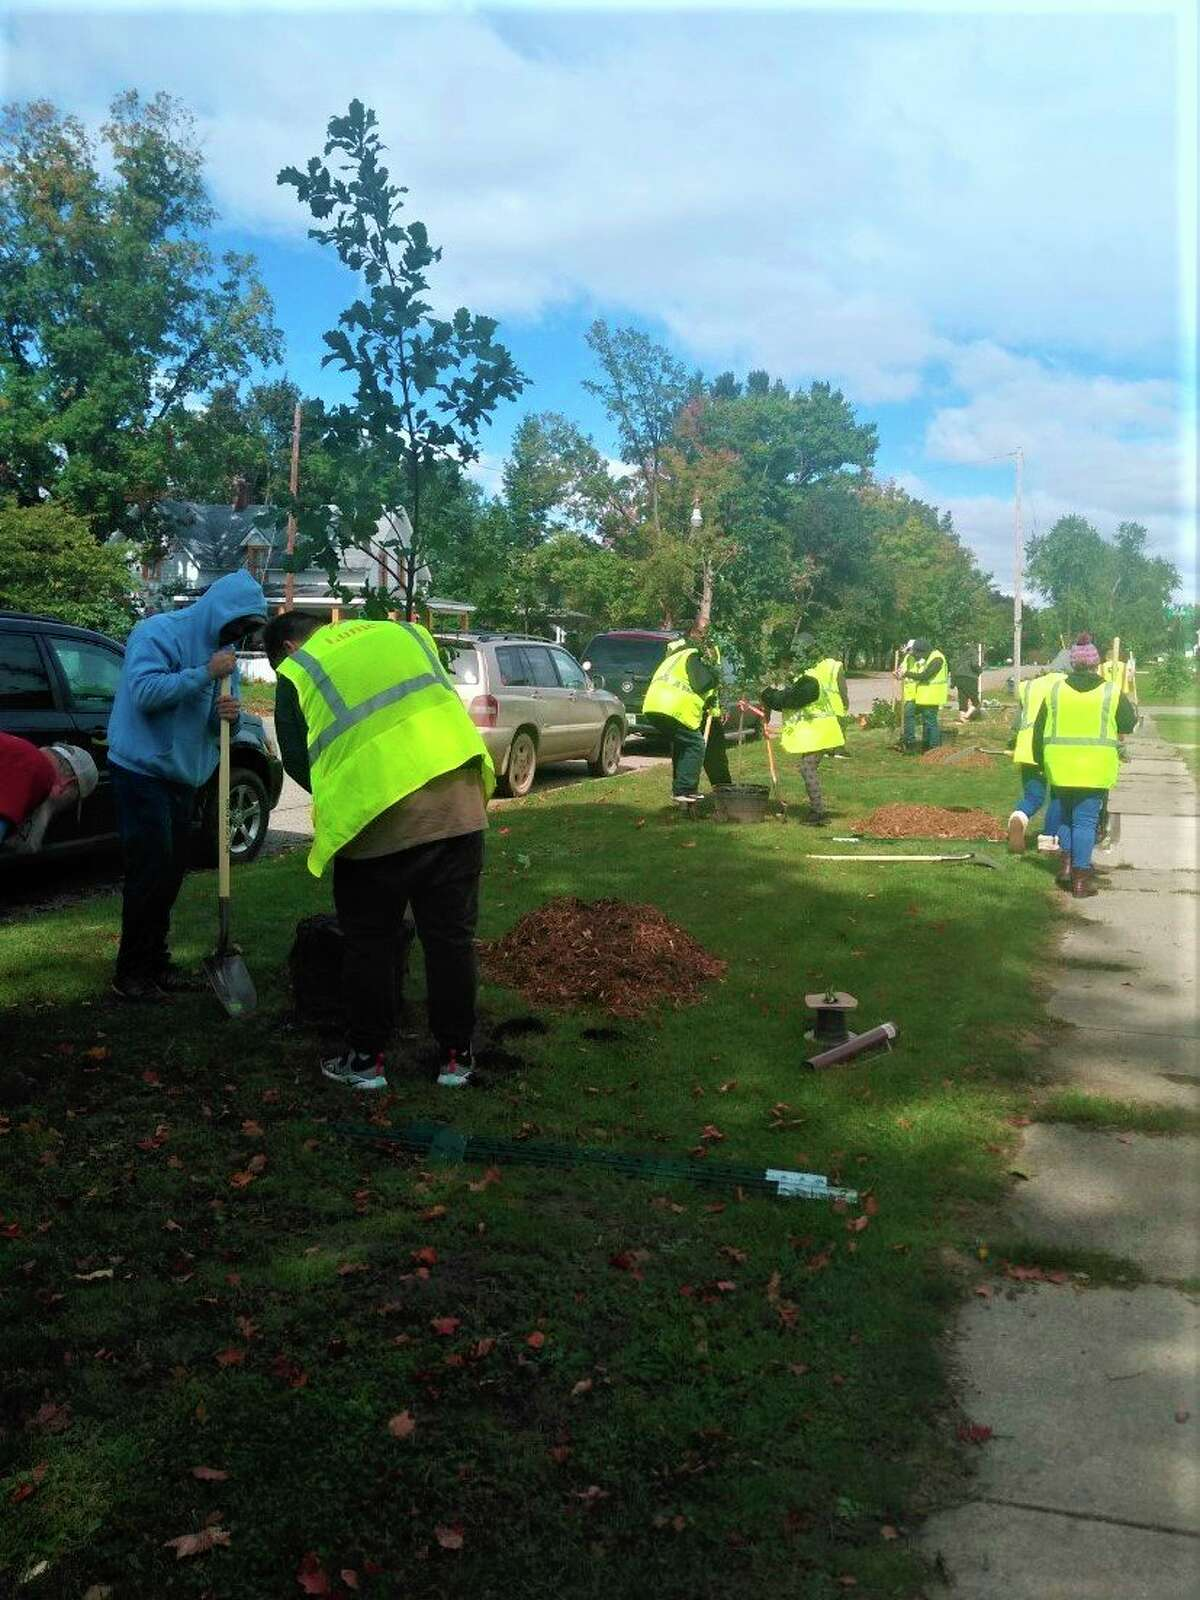 Volunteers from Lume Cannabis Company helped plant trees along Main Street in Evart after several mature trees were destroyed by the recent storms. (Submitted photo)